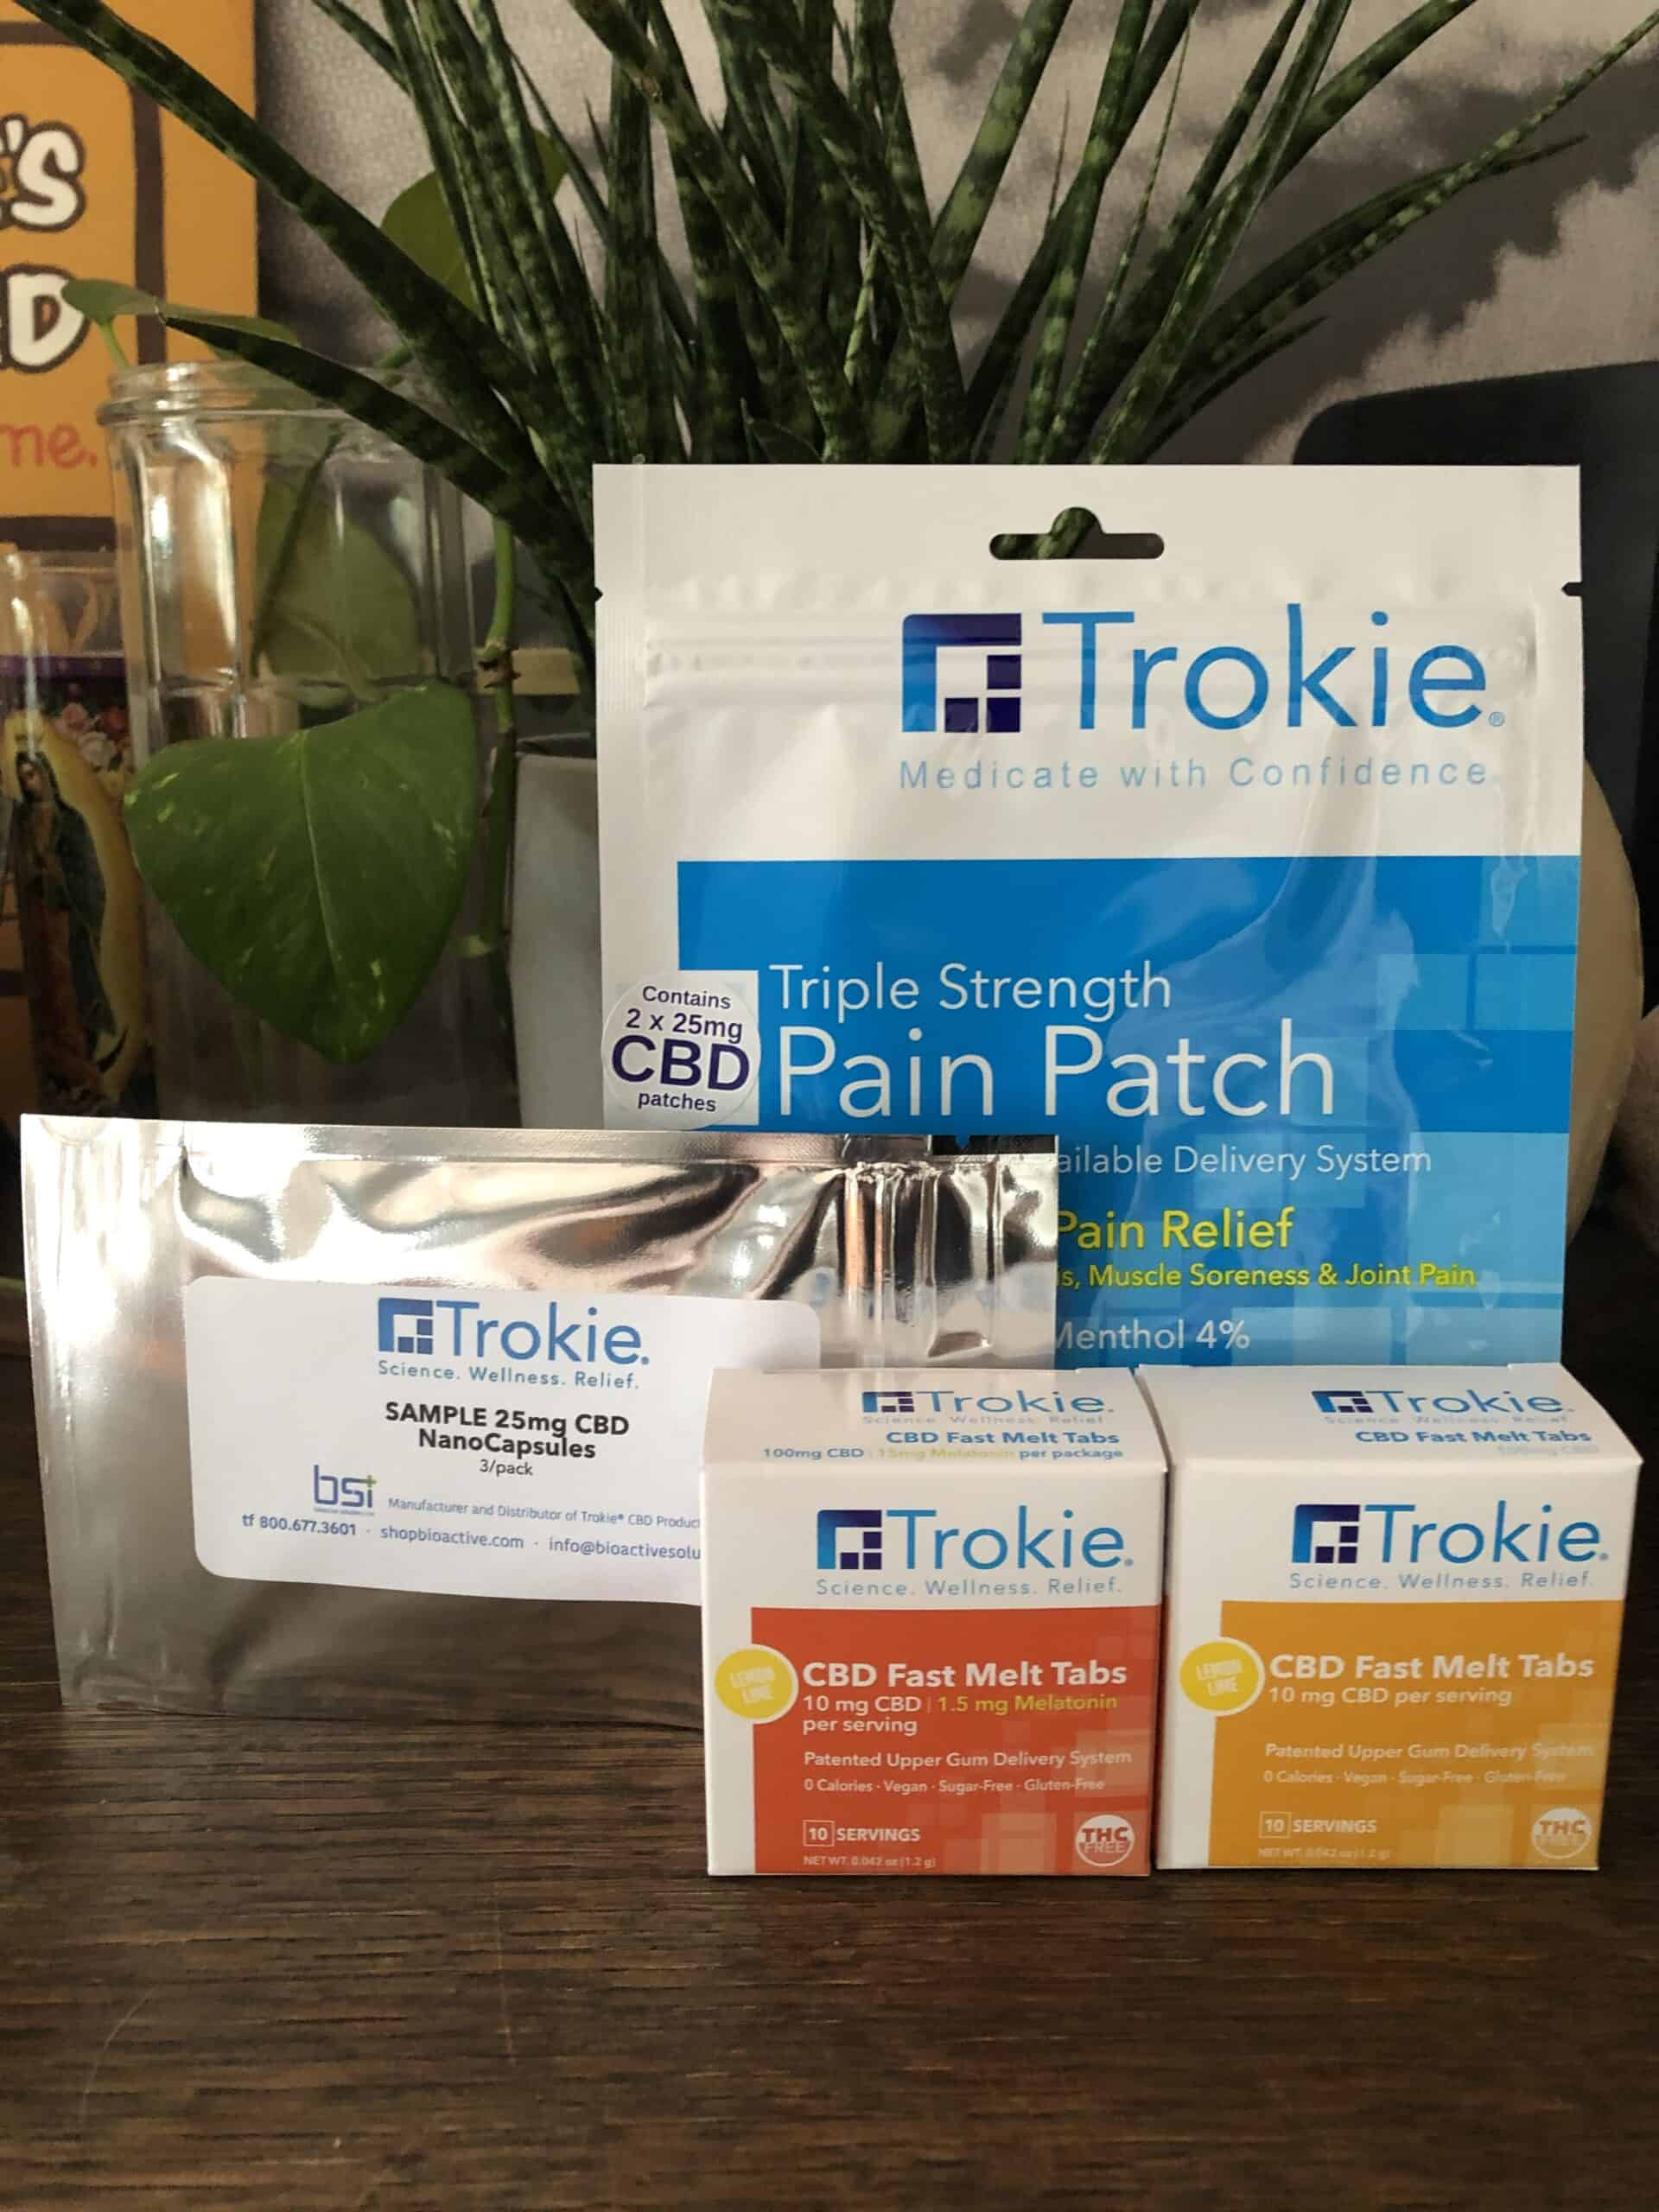 Trokie Triple Strength Pain Patch Save On Cannabis Review Beauty Shot